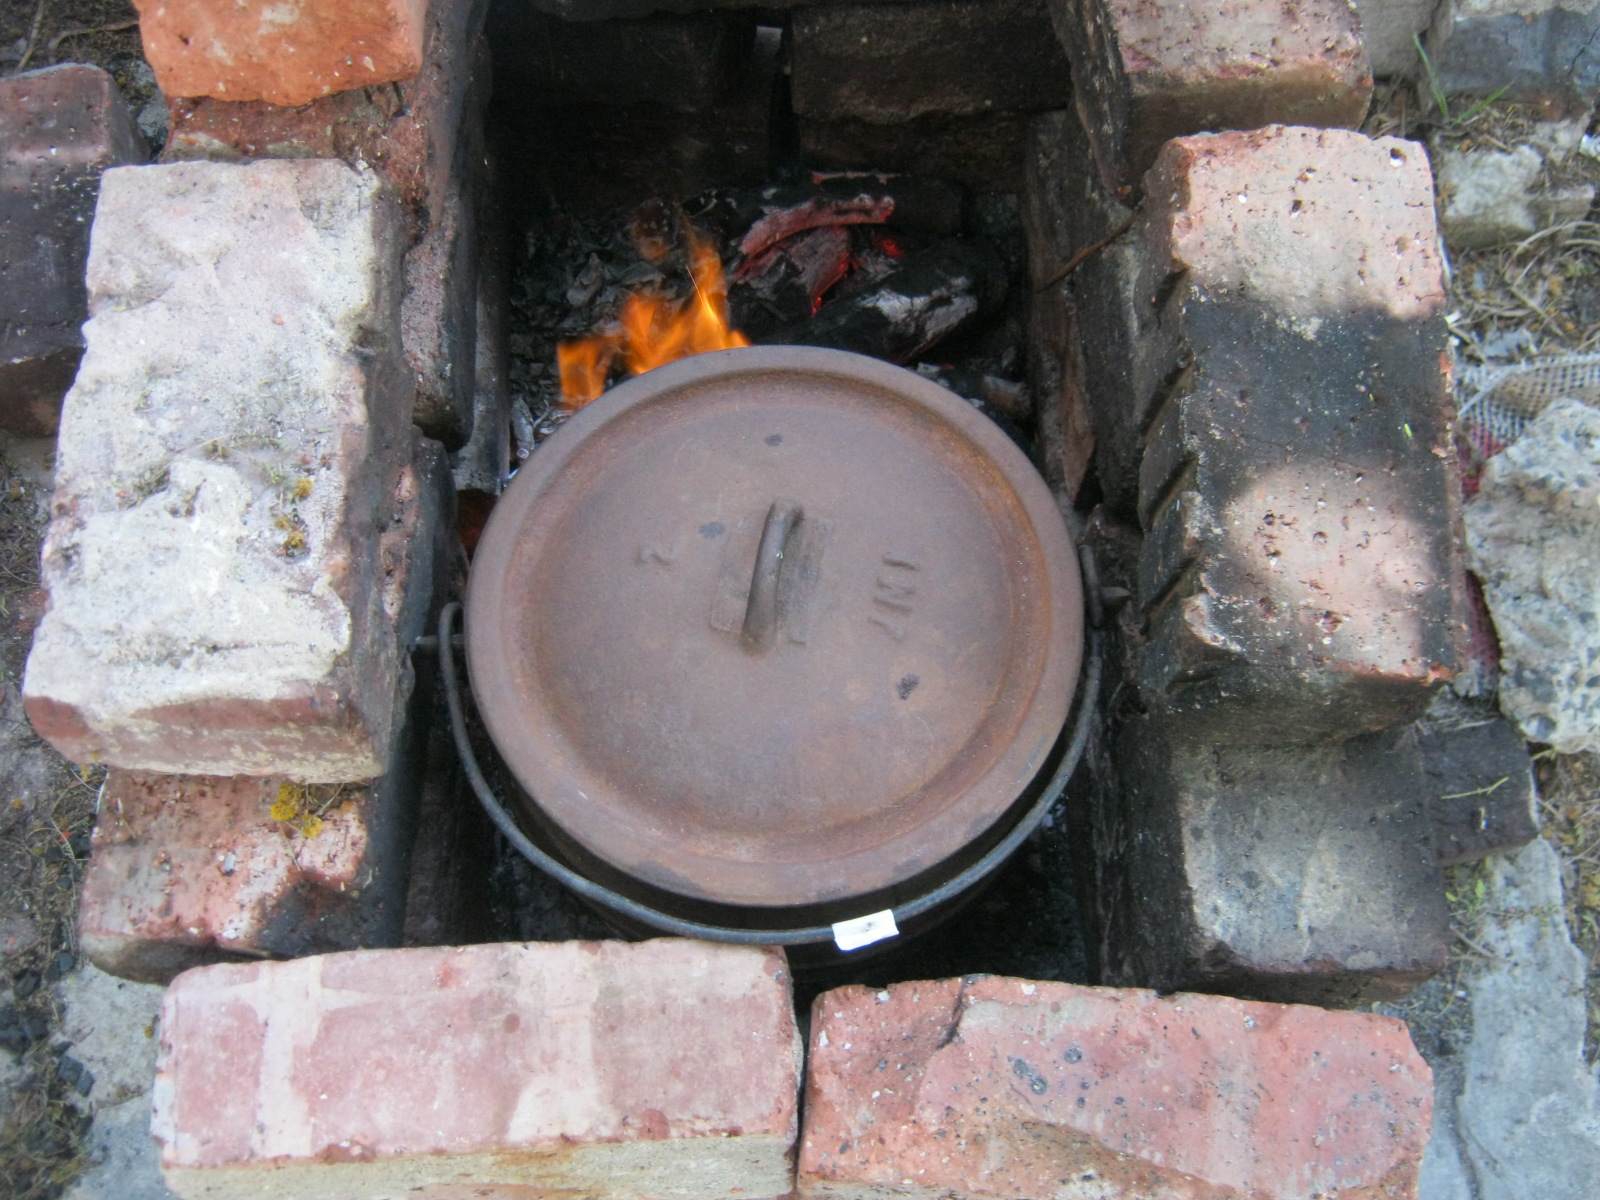 Place potjie on a few coals